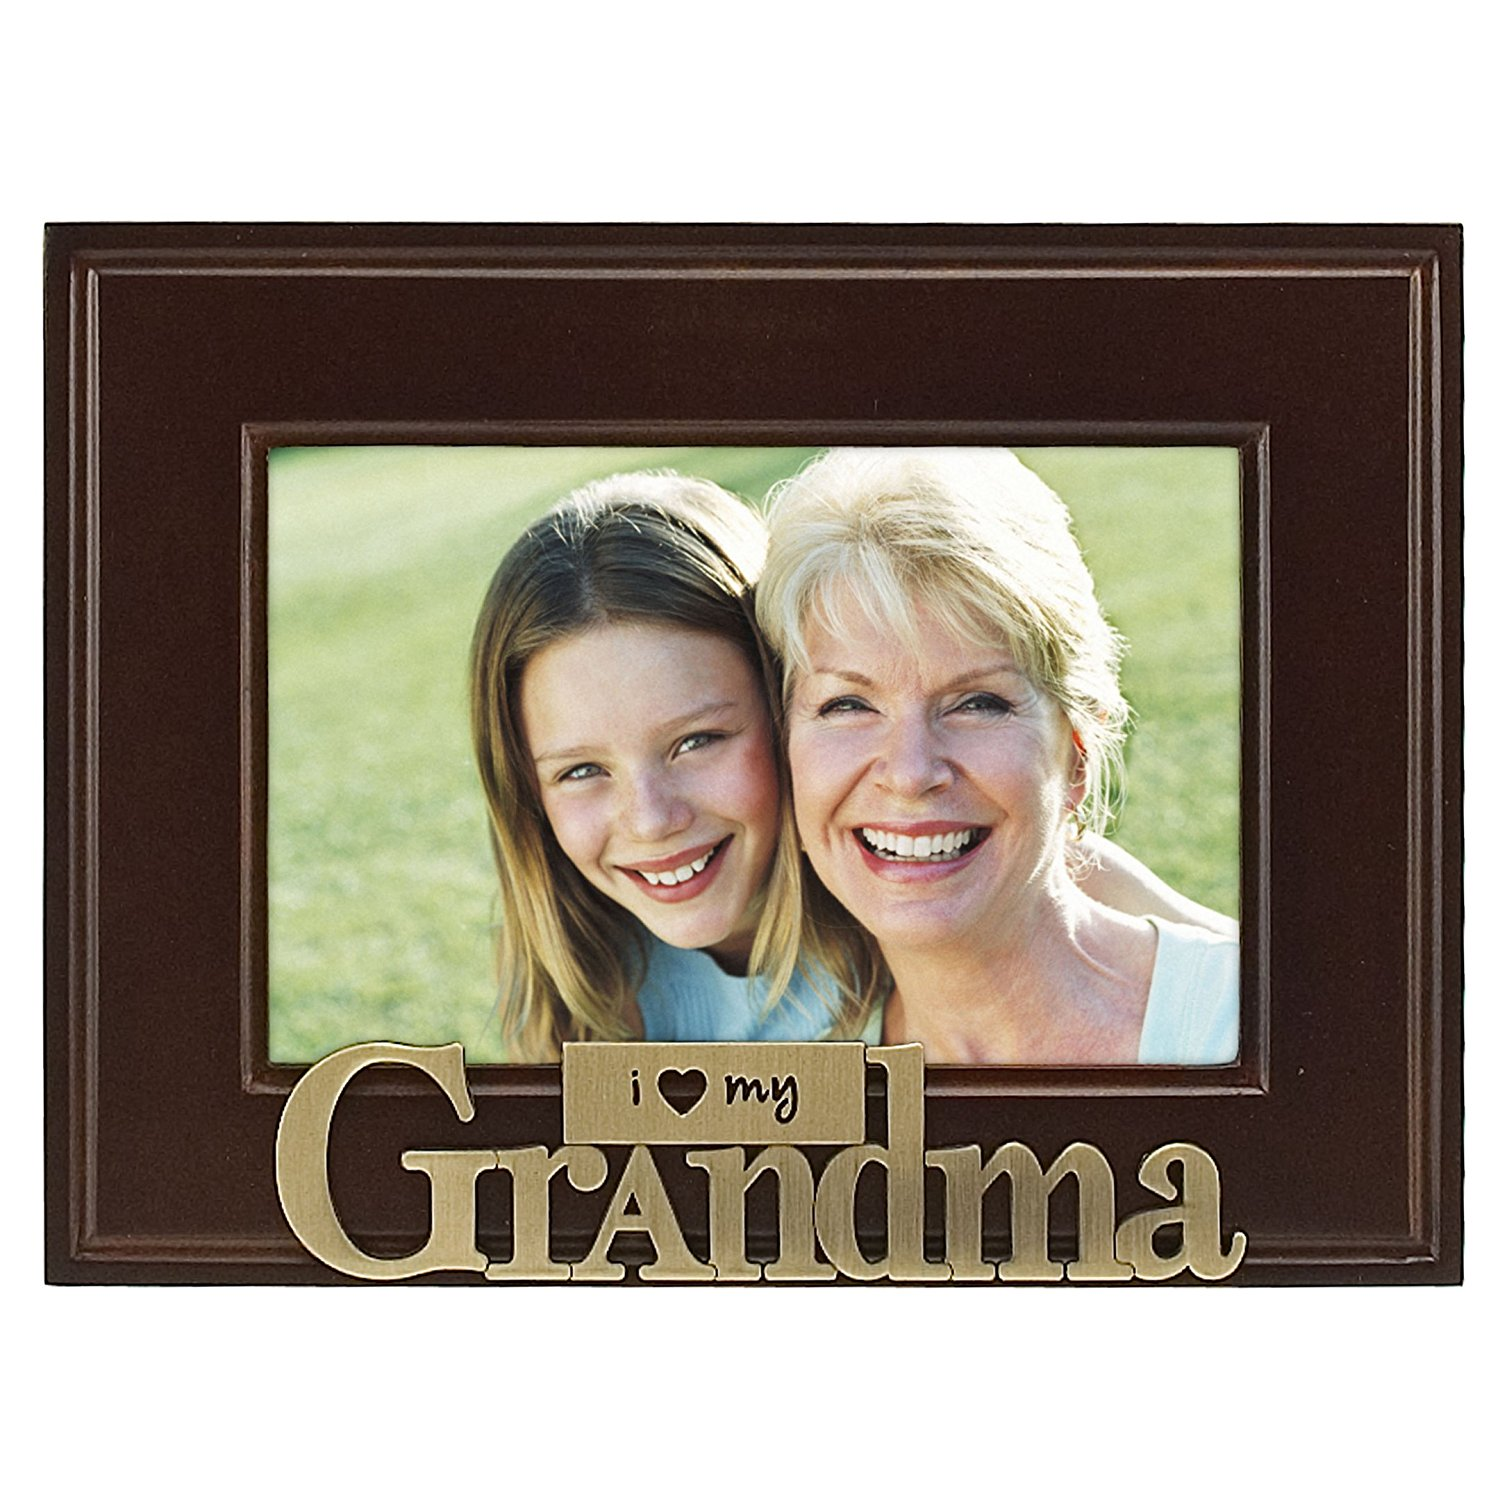 I Heart Brass Word Grandma Picture Frame 4x6 Brass Walnut Picture Frame With A Brass Heart Icon By Malden International Designs